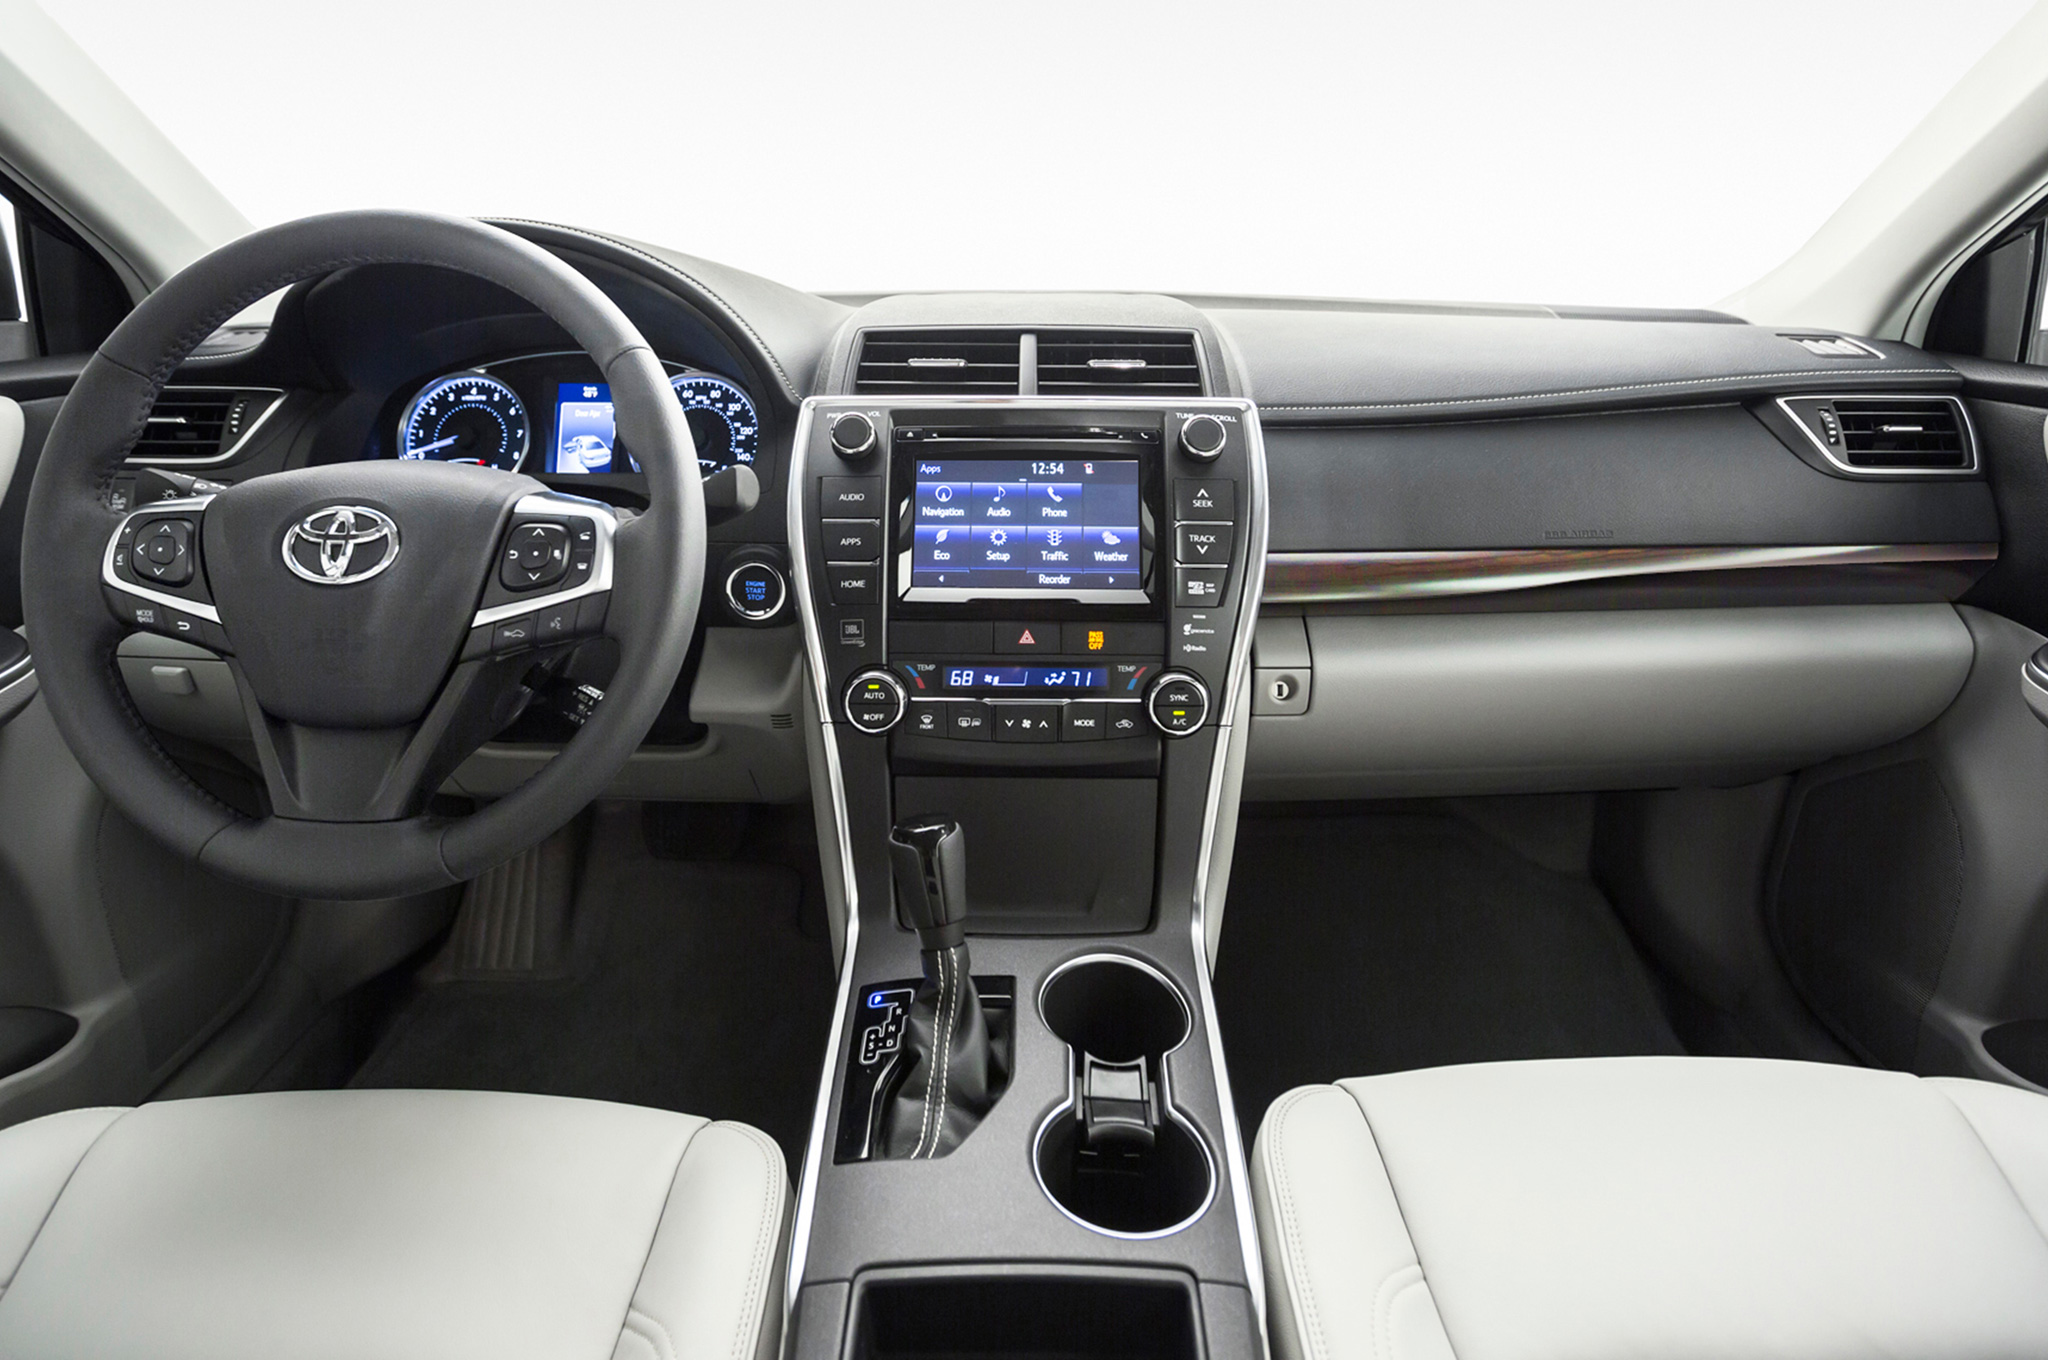 2015 toyota camry interior photo credits http wot motortrend